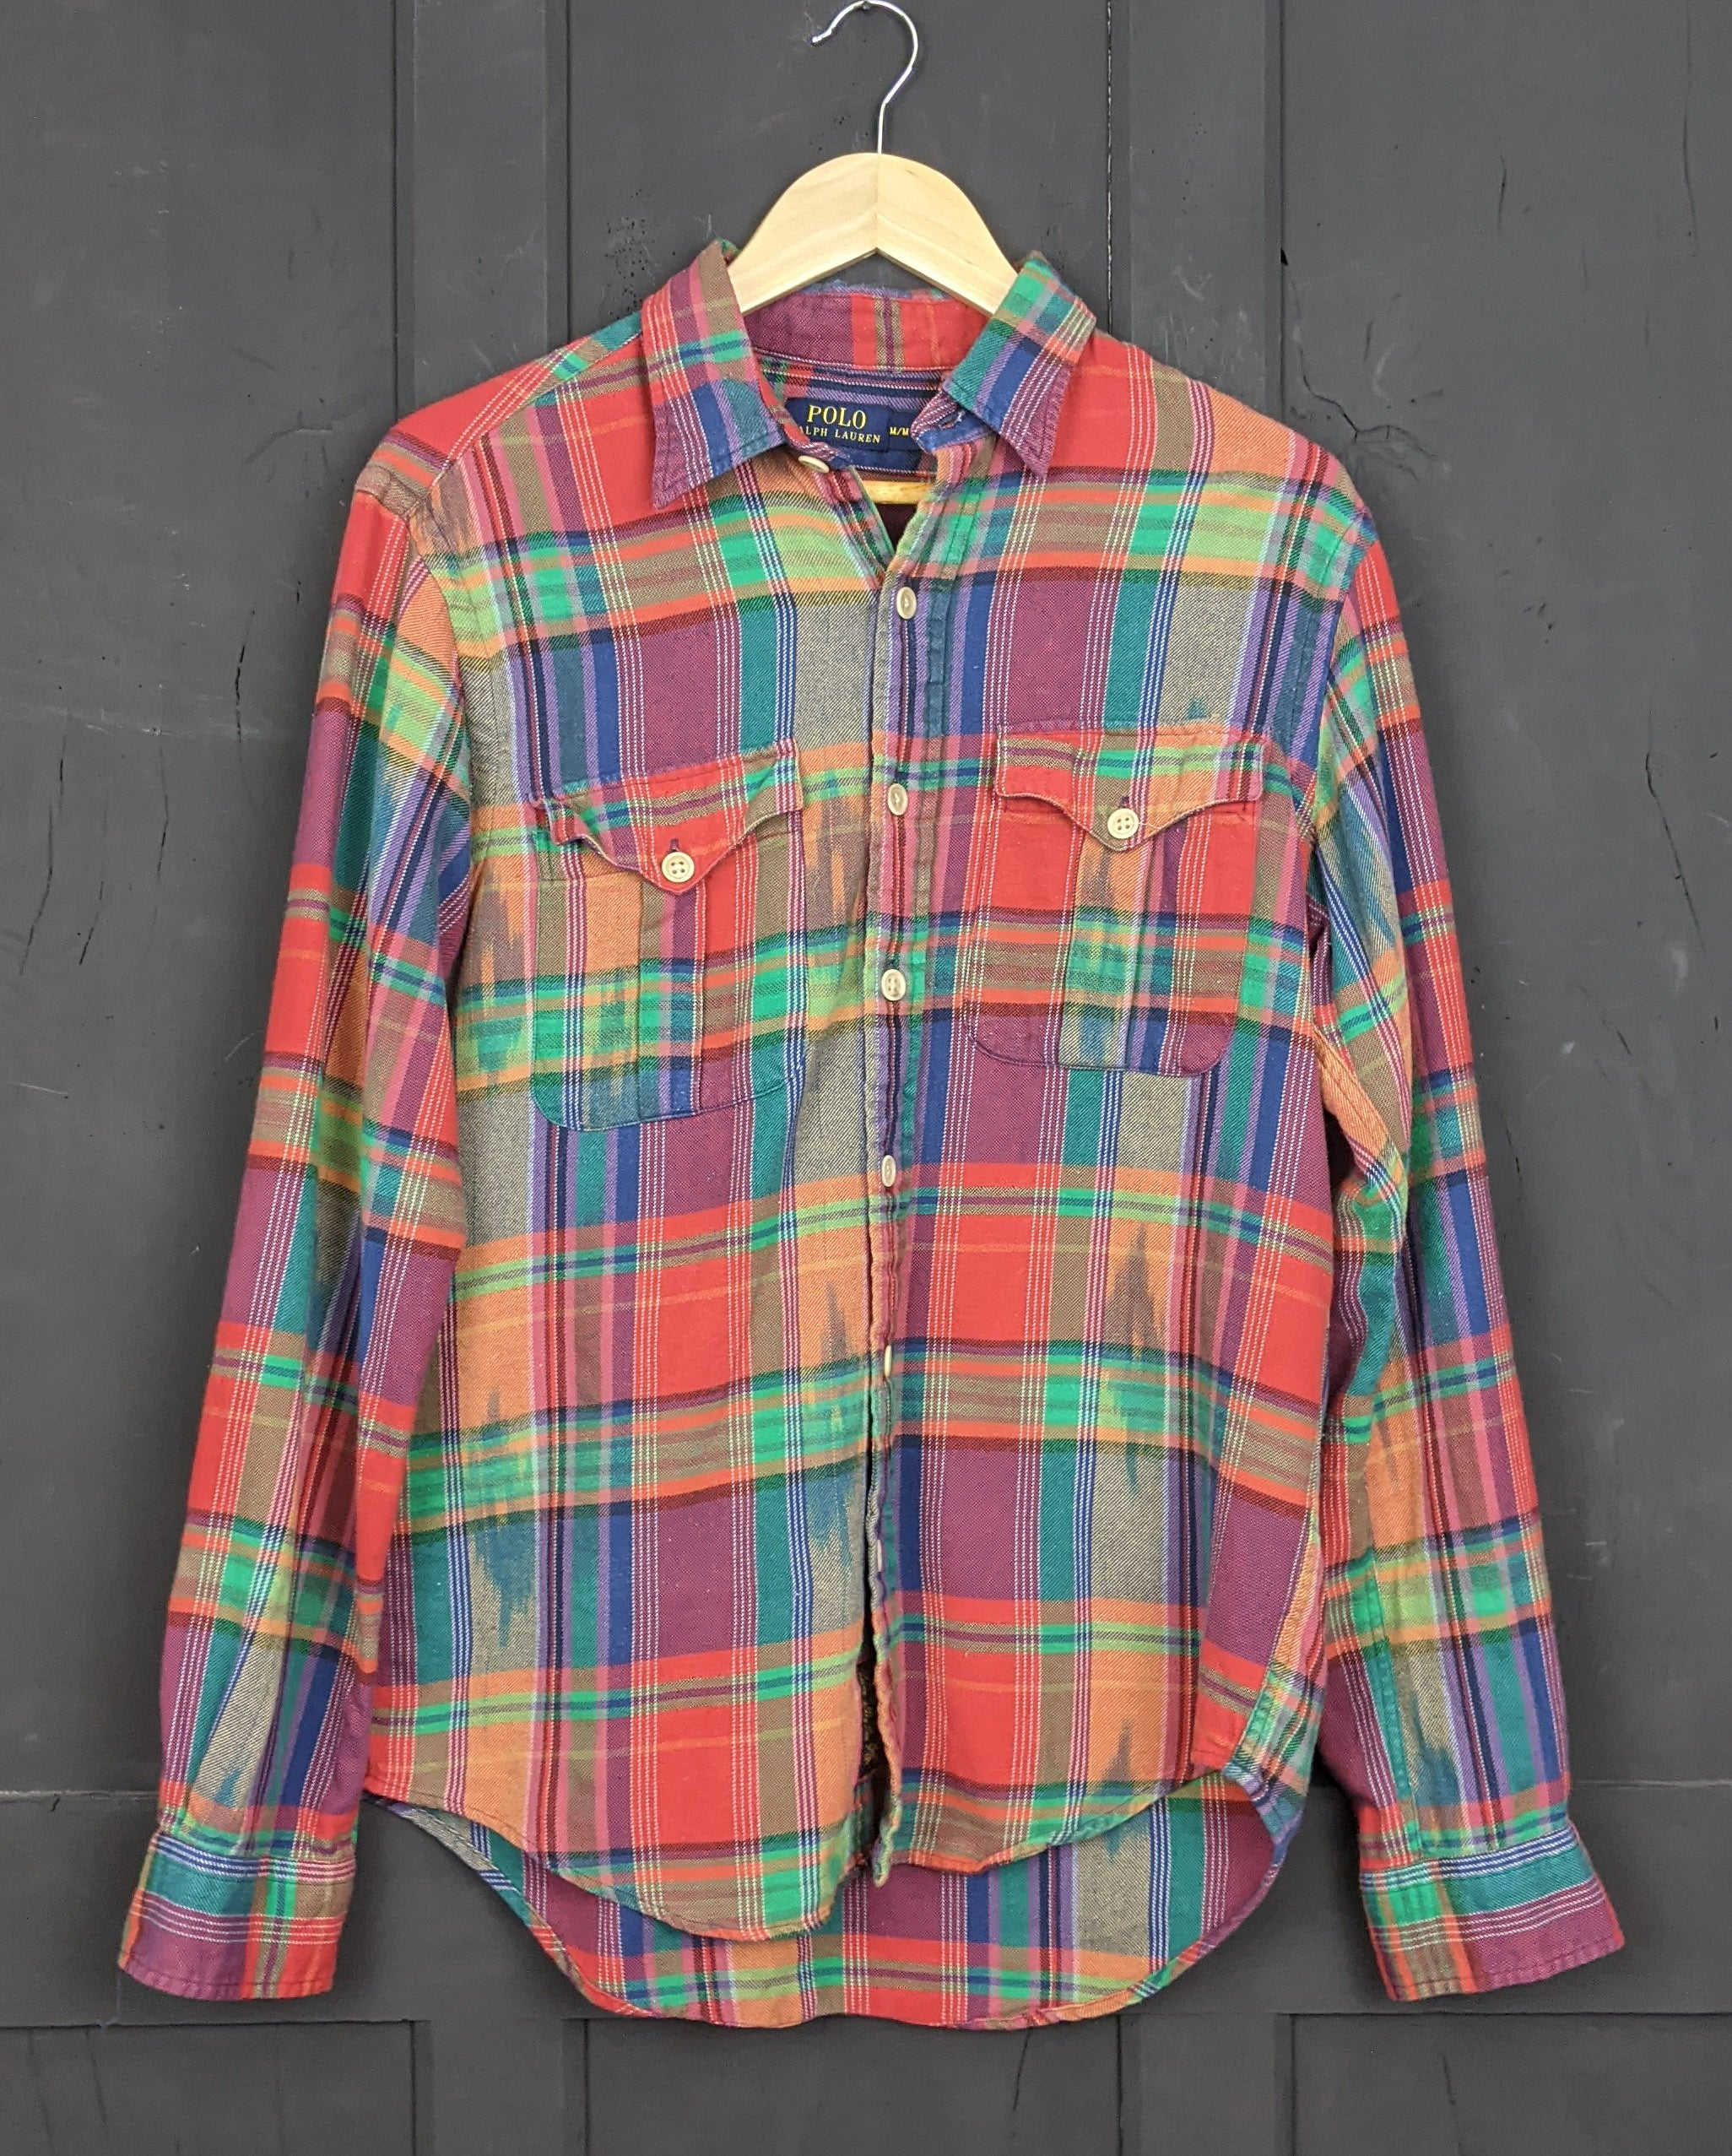 Ralph Lauren Polo flannel checked shirt S/M Item844